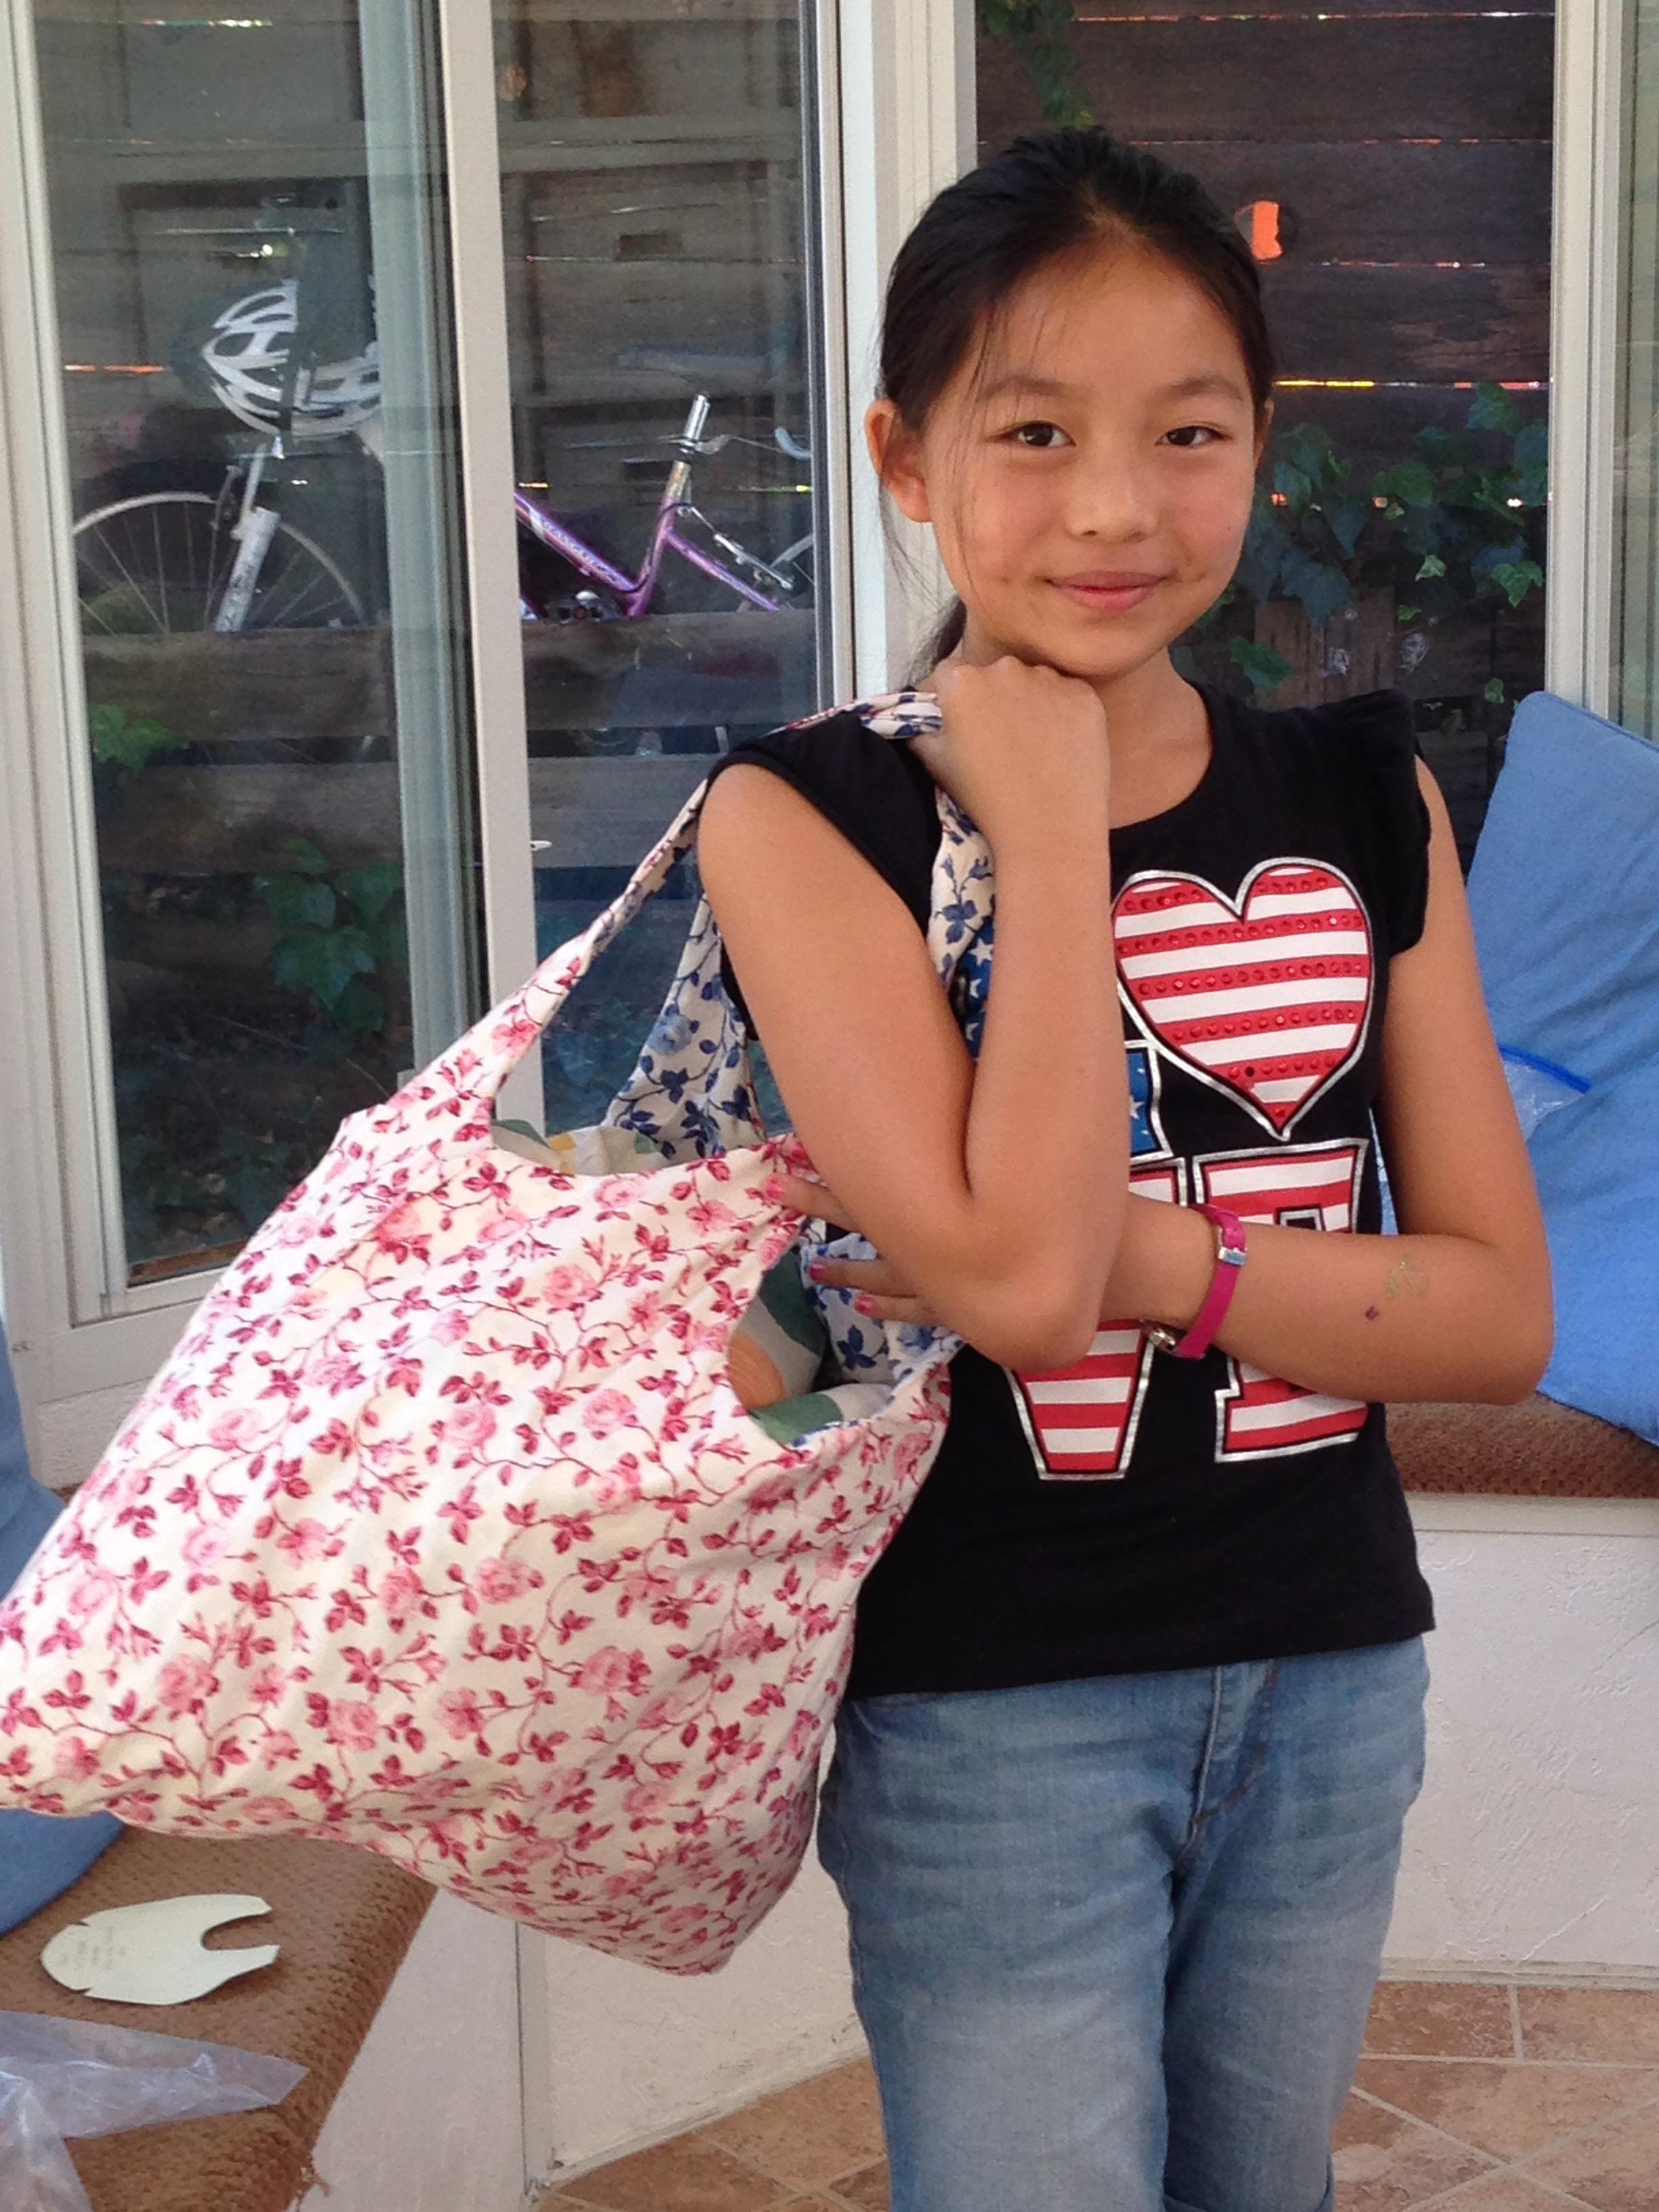 6th grader bag - to hold all her letter pillows from yesterday :o).